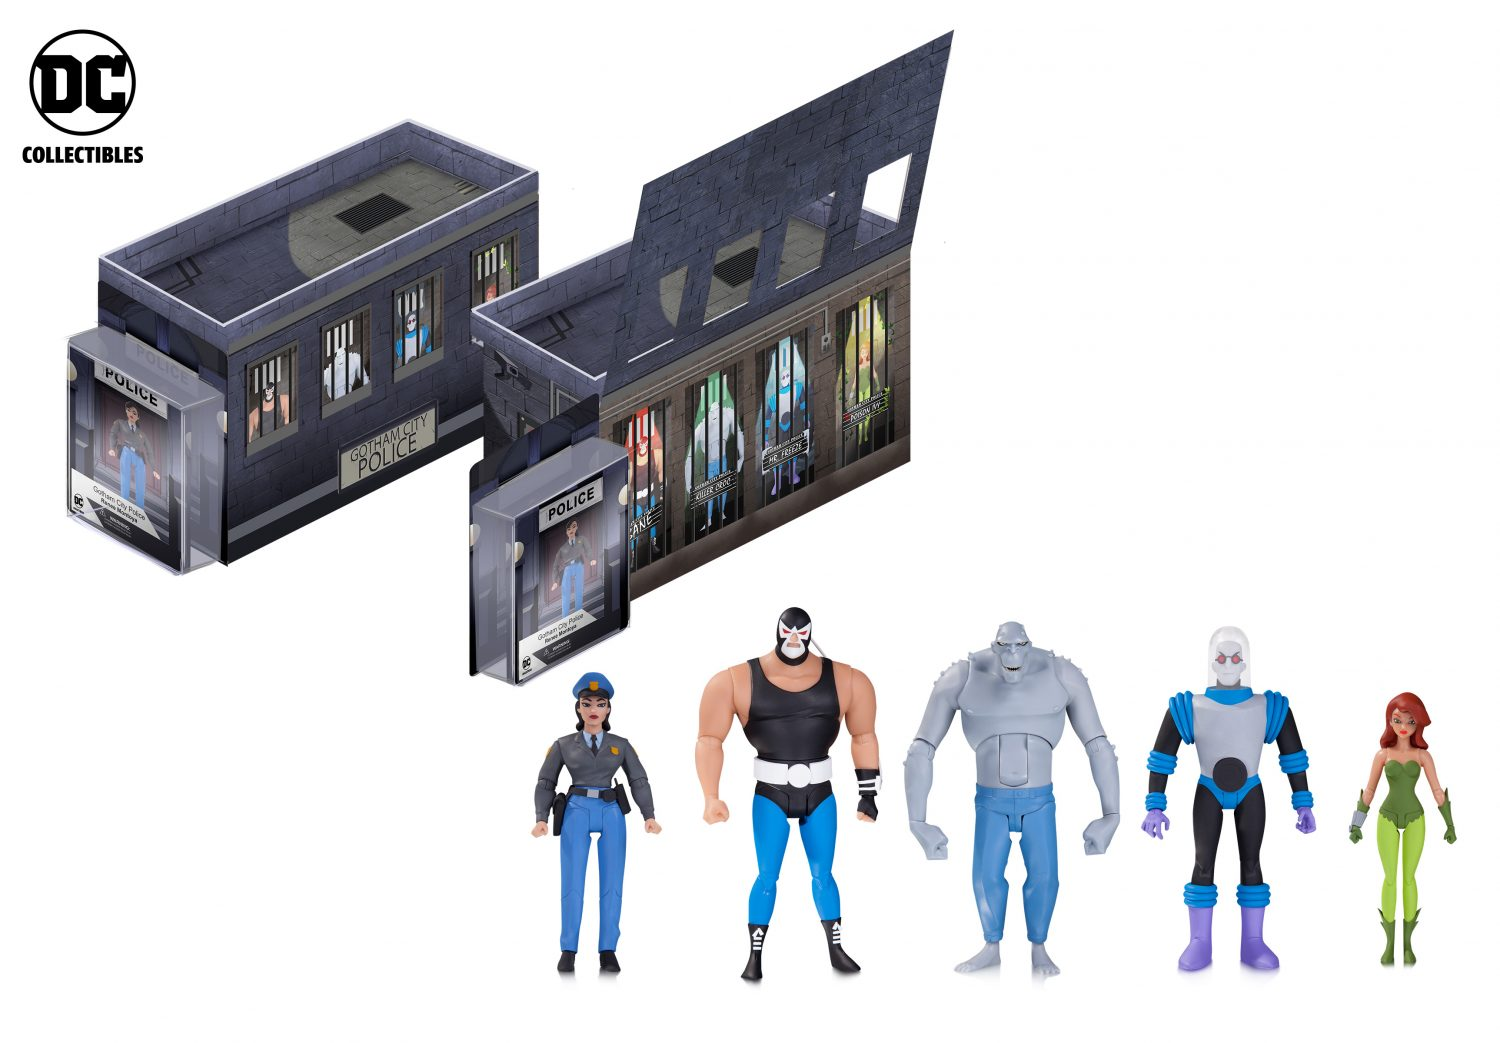 DC Collectibles Shipping Update: Batman: The Animated Series GCPD Rogues Gallery Figure 5-Pack